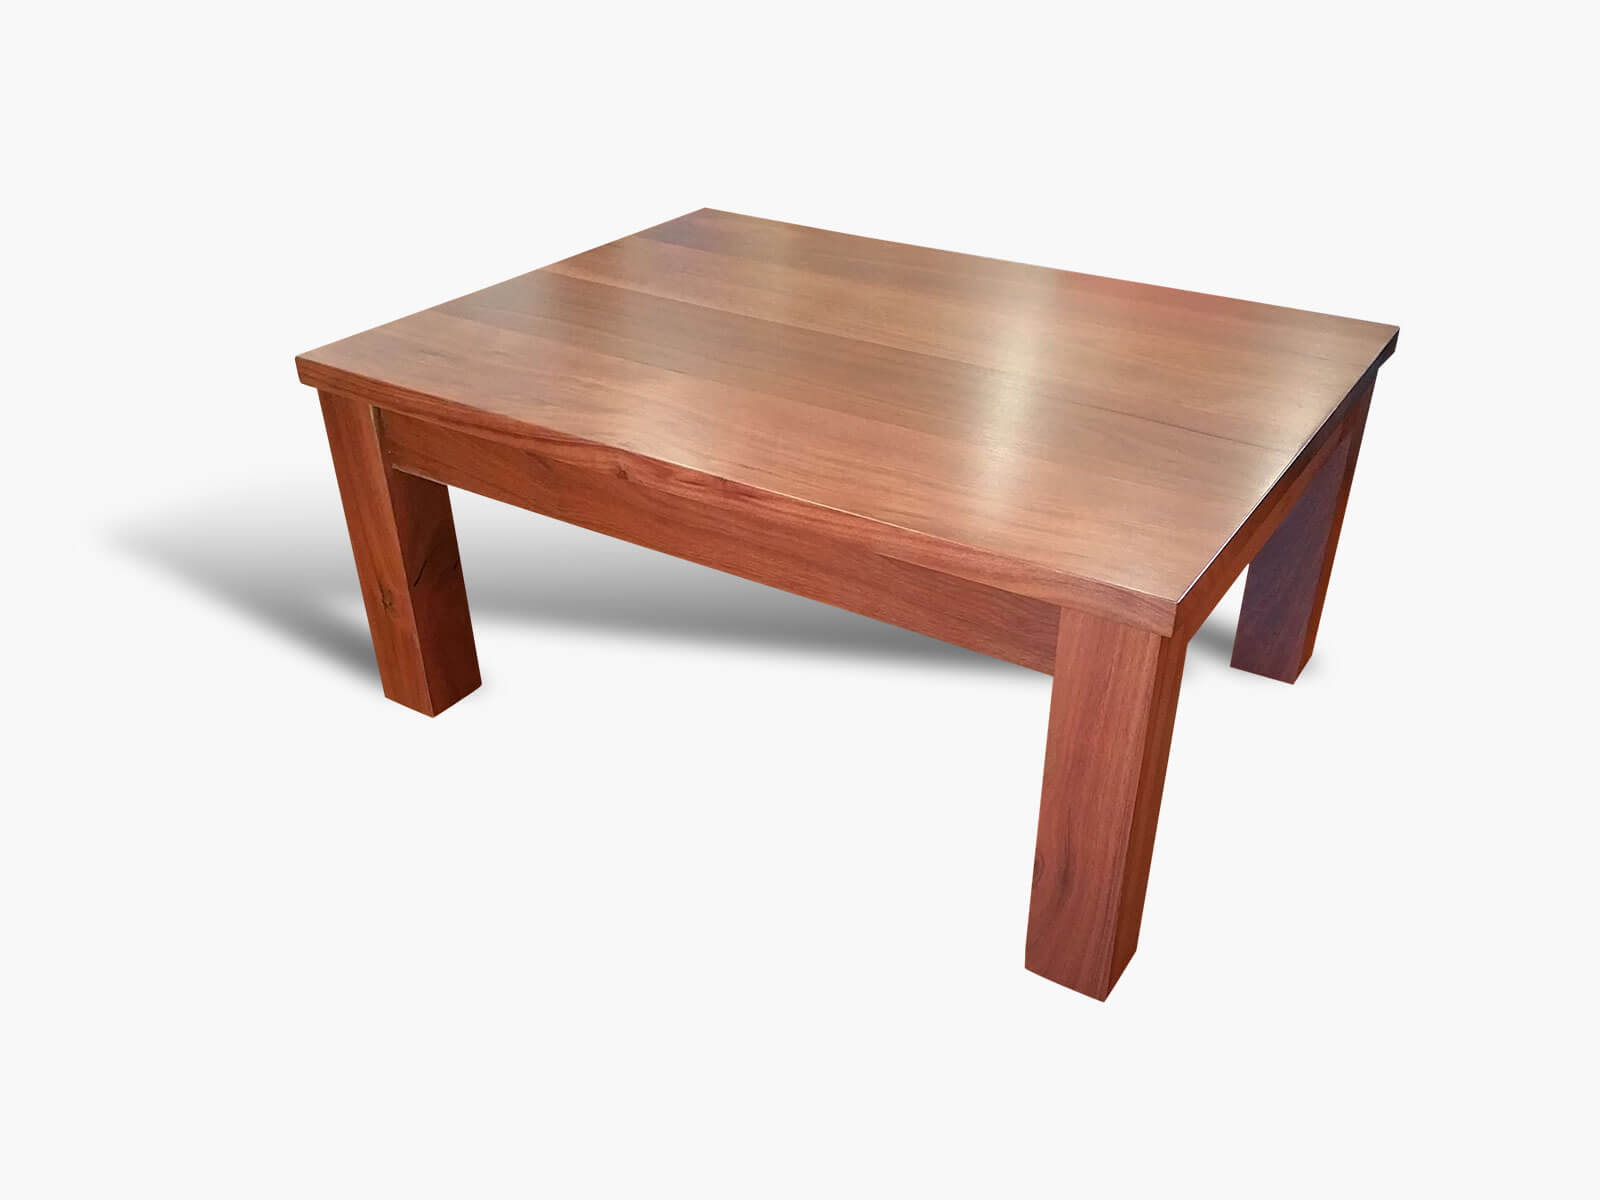 Applecross Jarrah Coffee Table